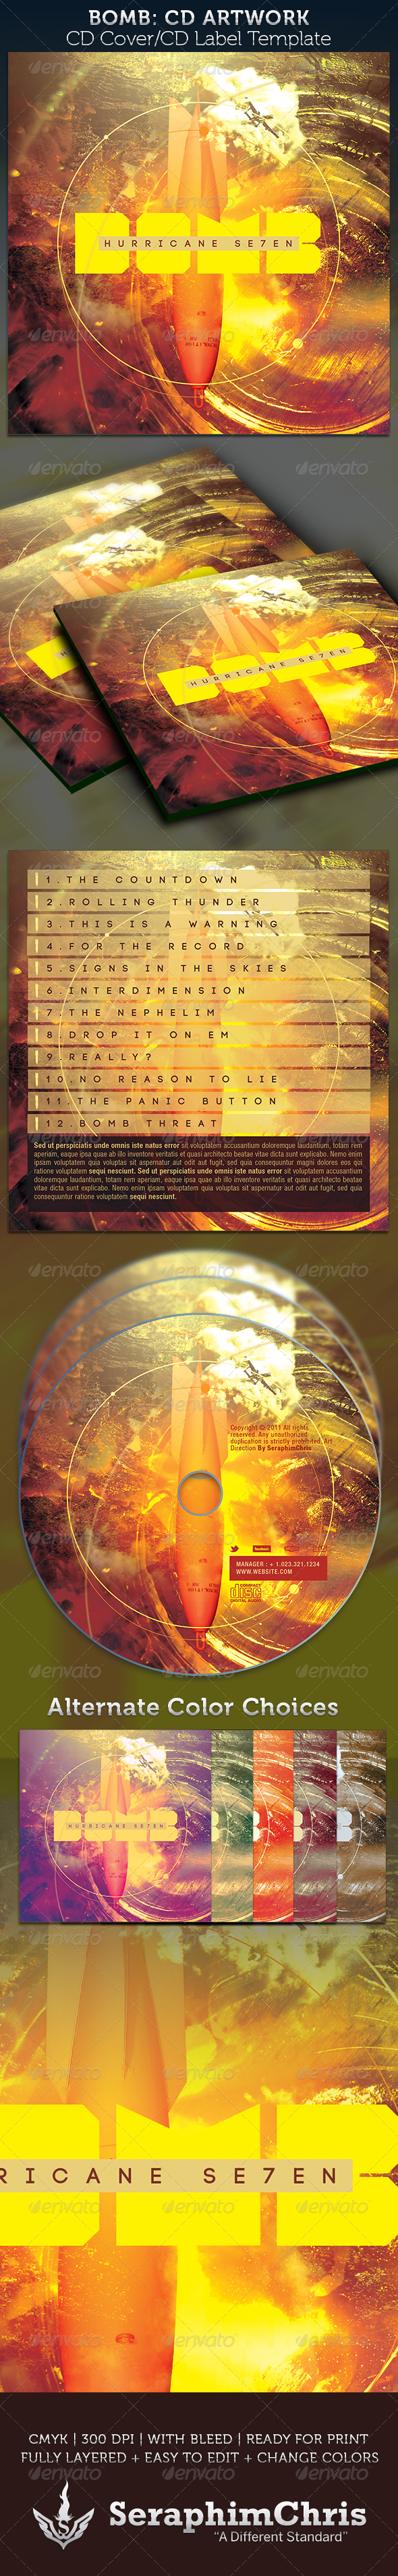 GraphicRiver Bomb CD Cover Artwork Template 3688986